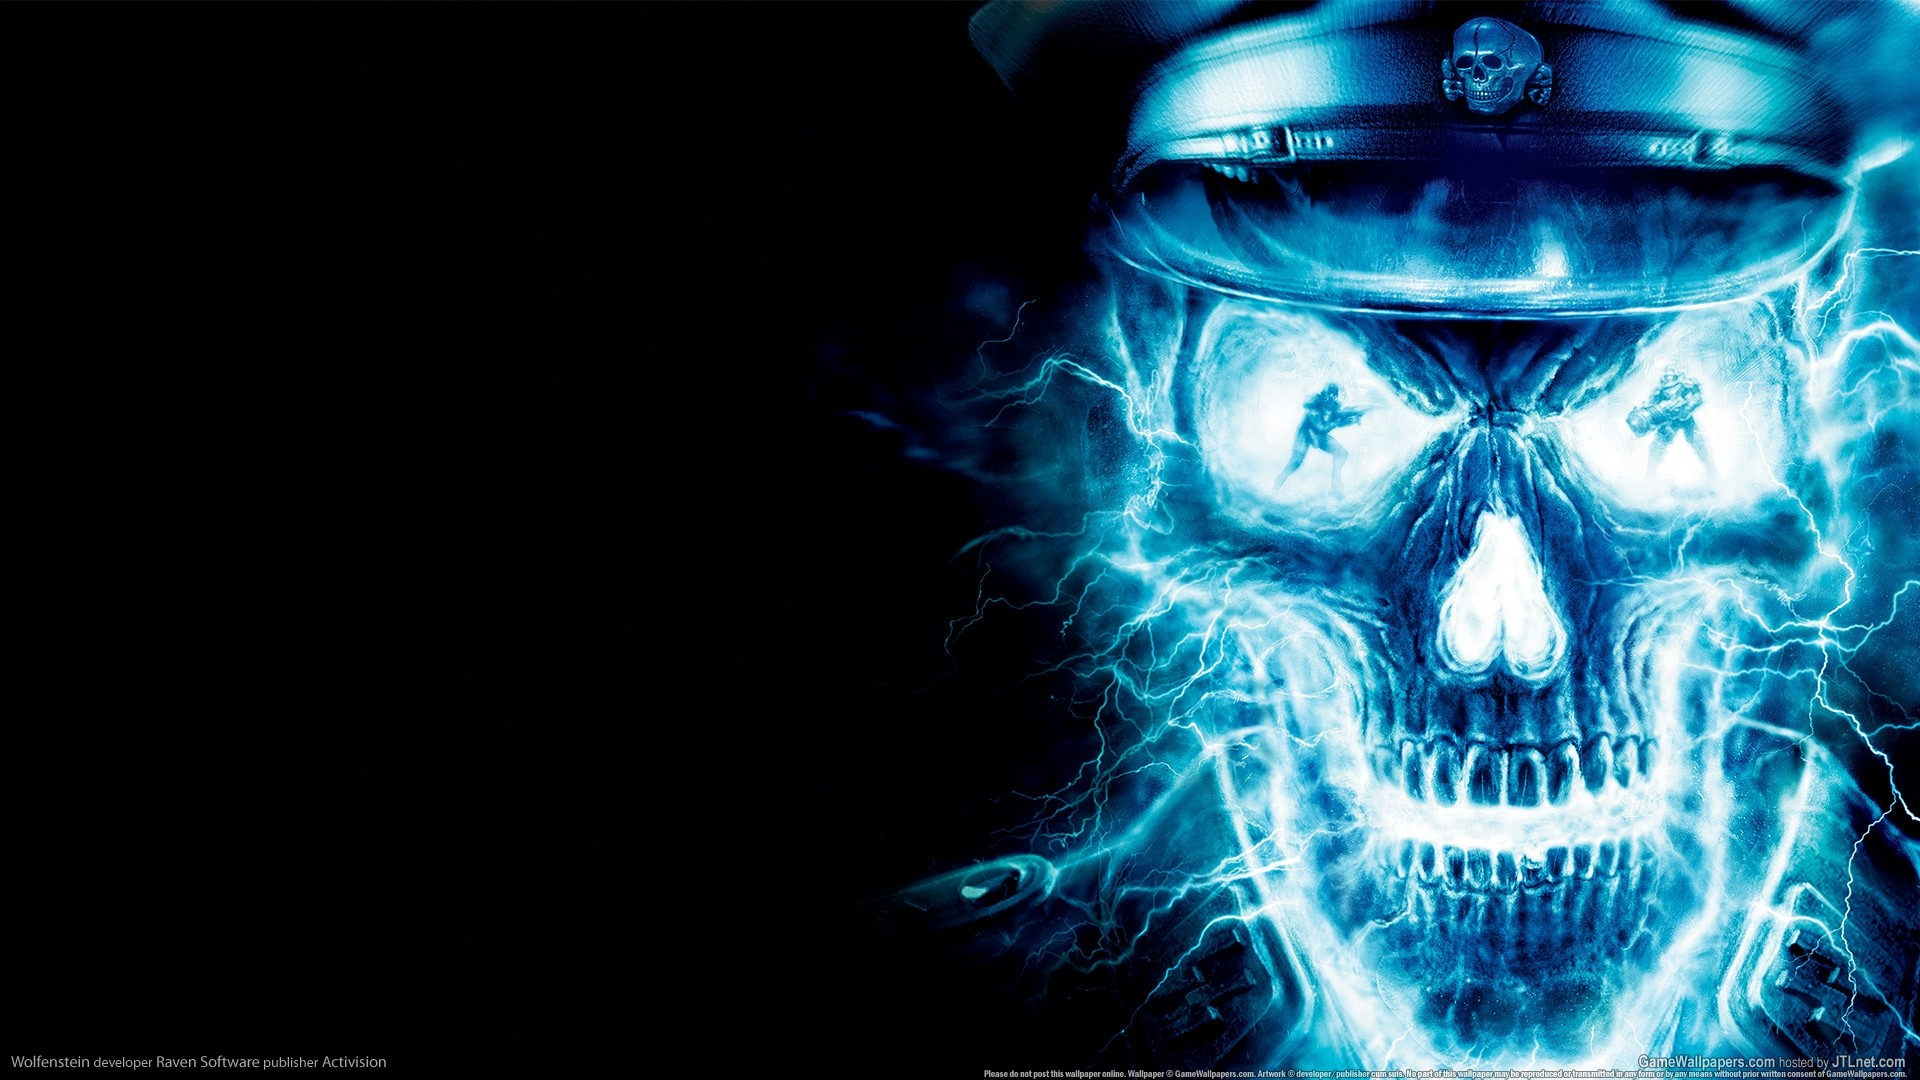 1920x1080 Cool-Skulls-Pulse-1920%C3%971080-Awesome-skull-